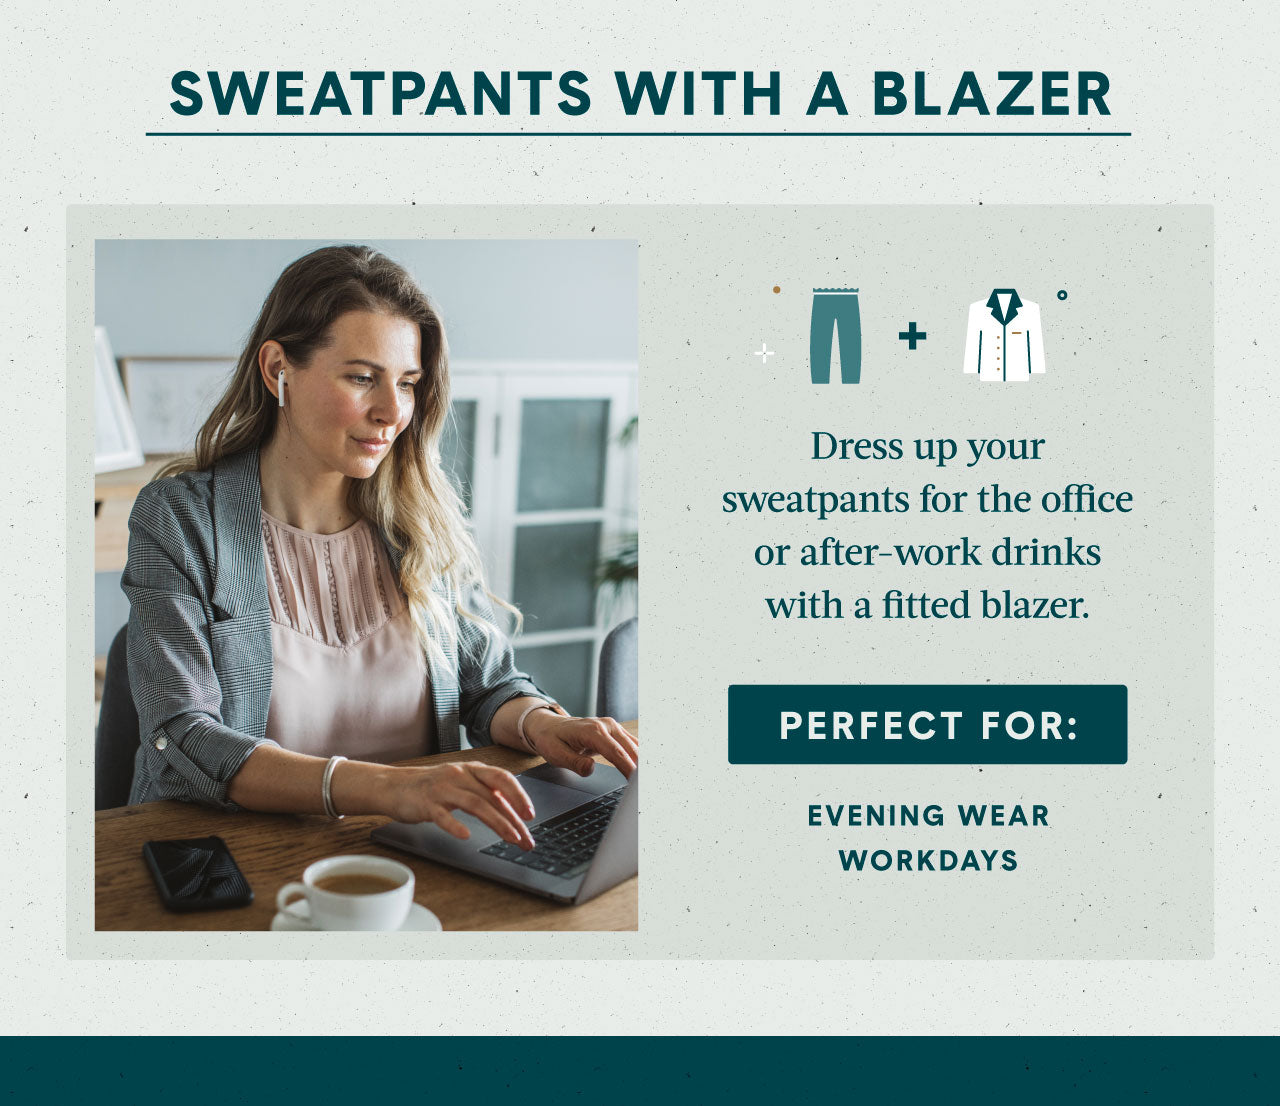 Women sitting at her desk working and wearing a blazer and work attire clothing with her sweatpants